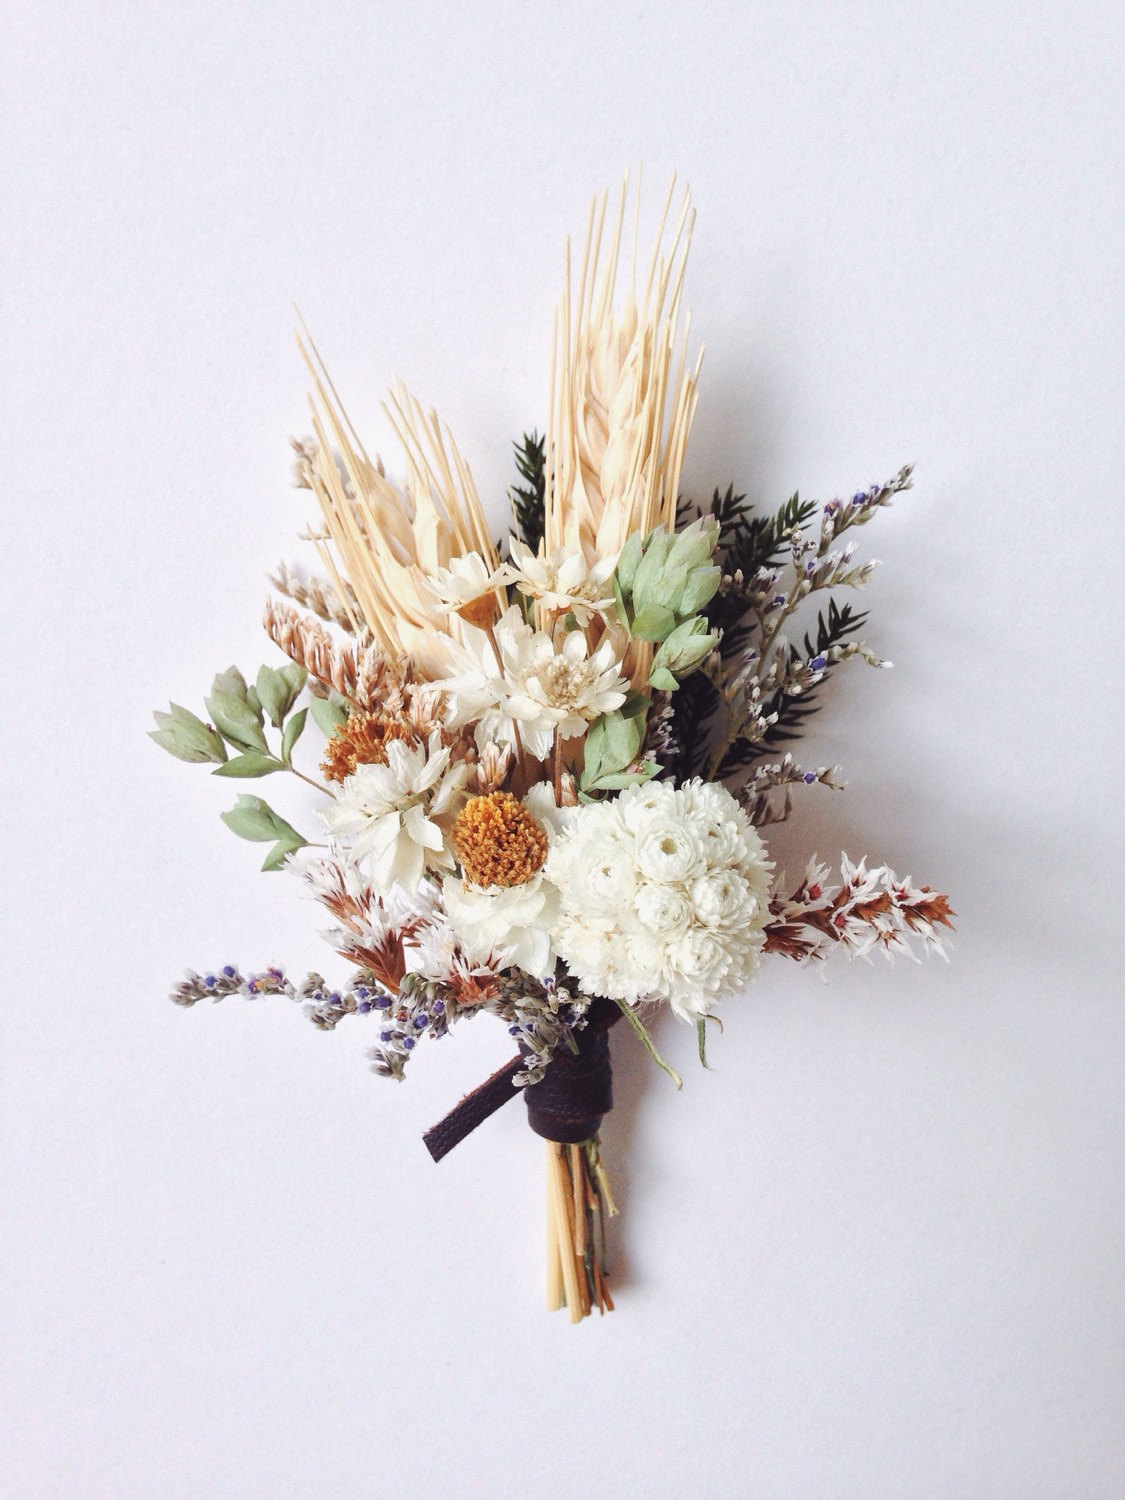 Meadowlark Flower and Wheat Boutonniere Arrangement